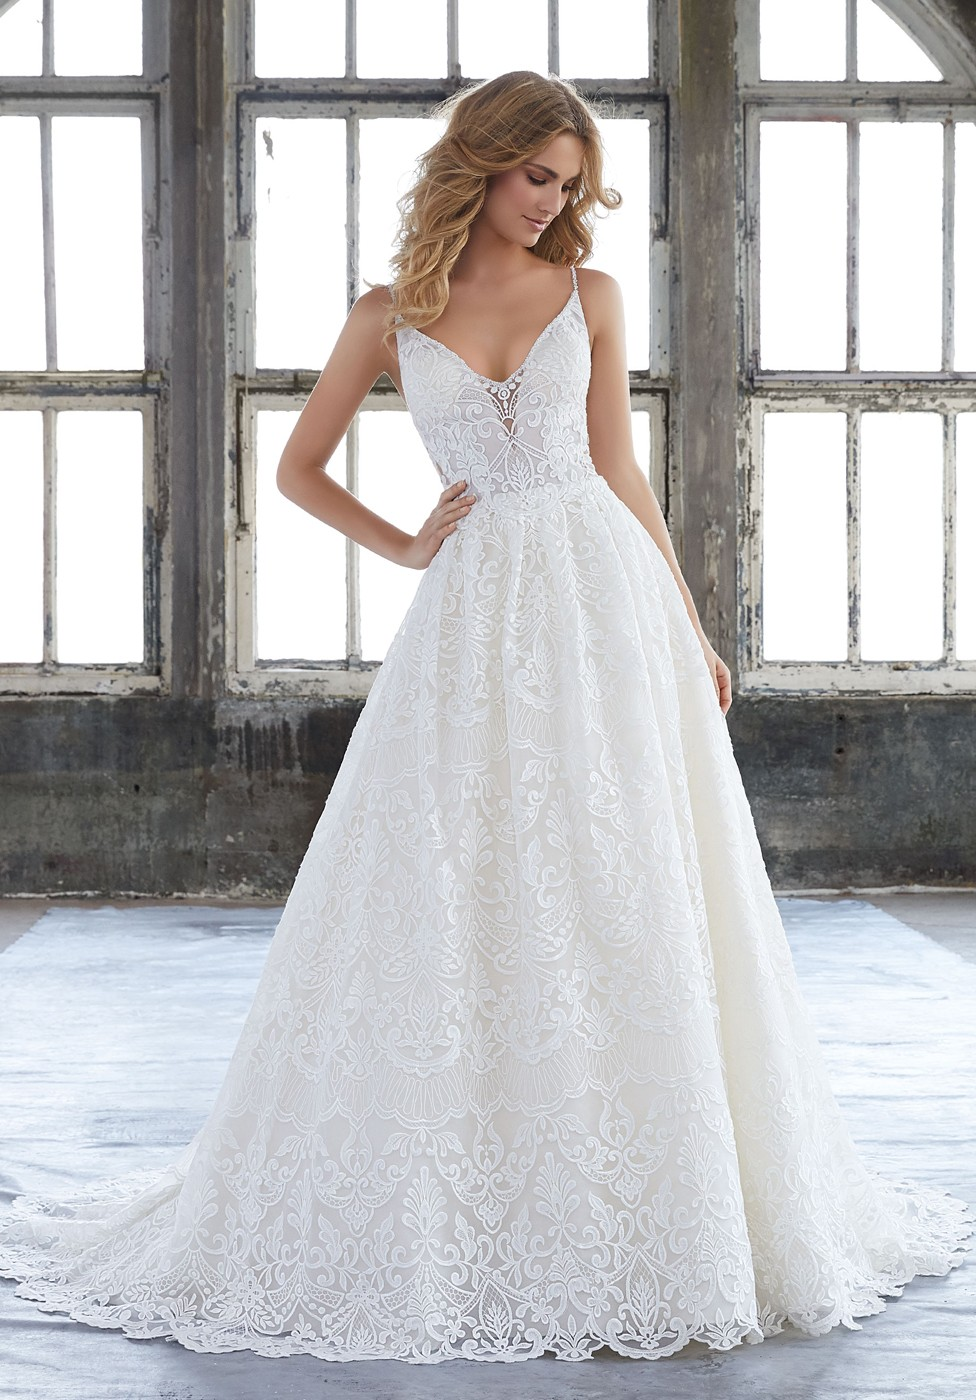 Mori Lee Kasey Style 8204 Dress - MadameBridal.com